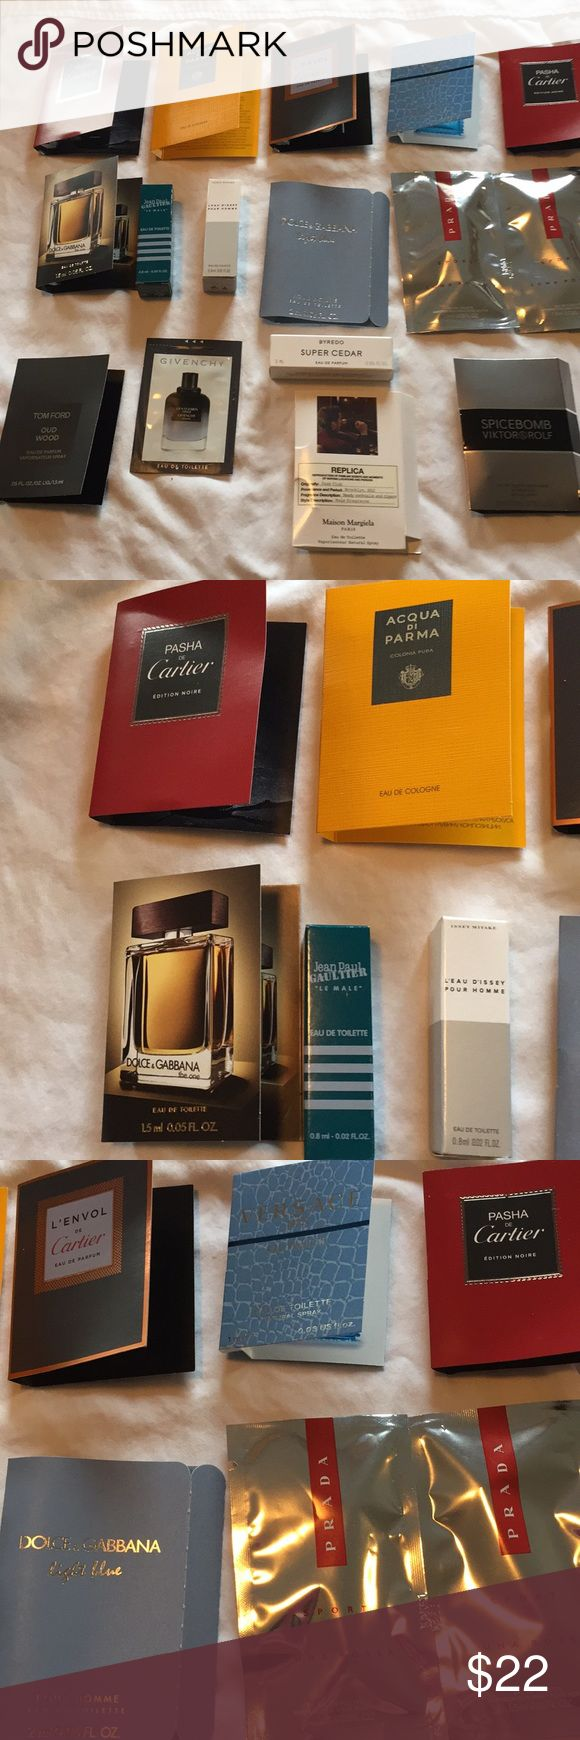 Prestige men's cologne samples 16 Prestige men's cologne samples.  16 samples including Cartier acqua di Parma Versace dolce and gabbana jean Paul gaultier issay miyake Tom Ford givency byerdo replica viktor and Rolf Other